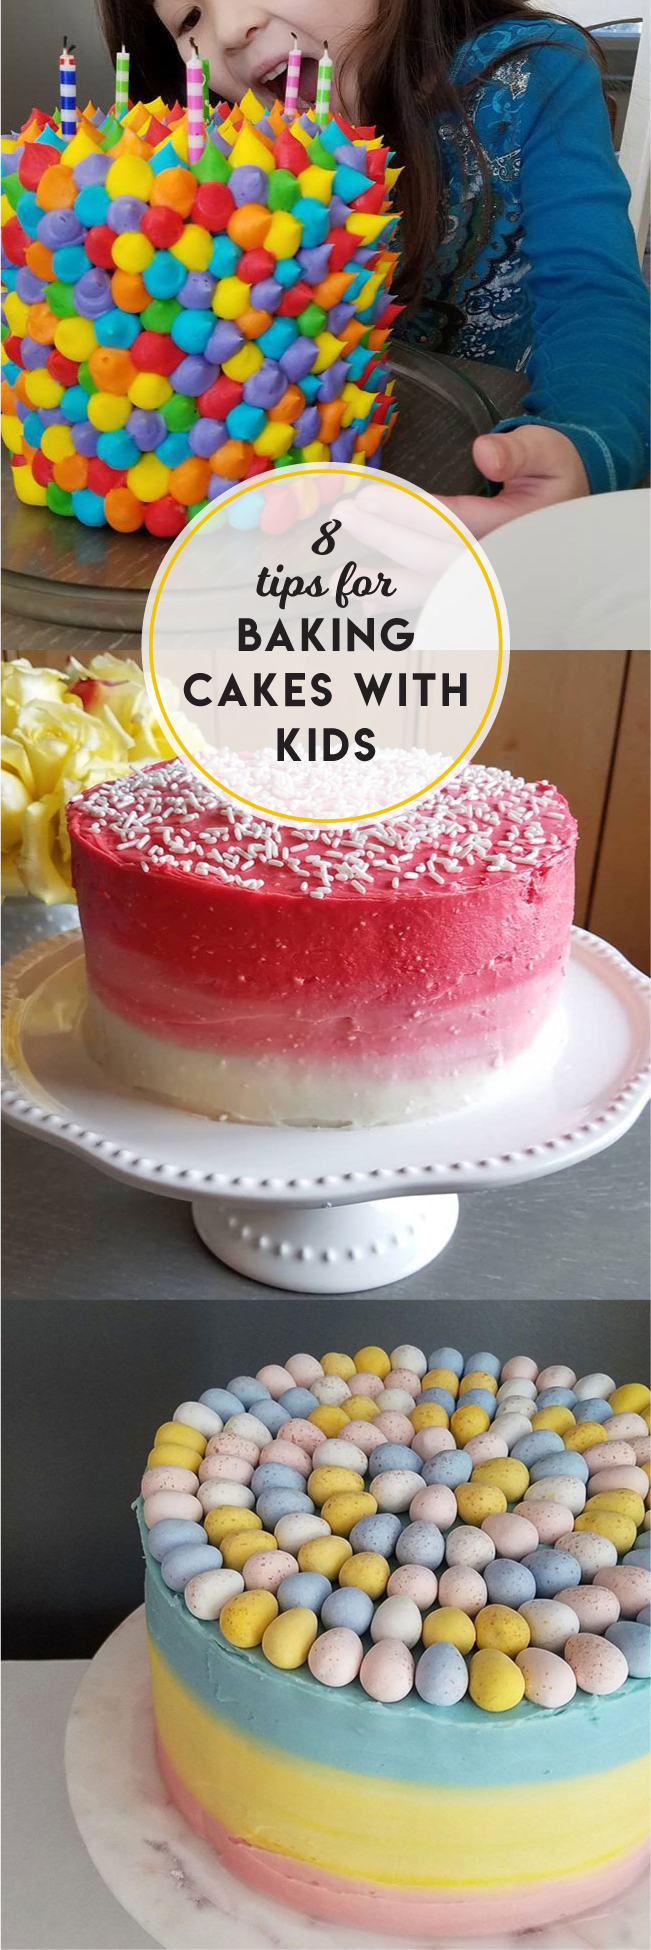 baking-cakes-with-kids.jpg